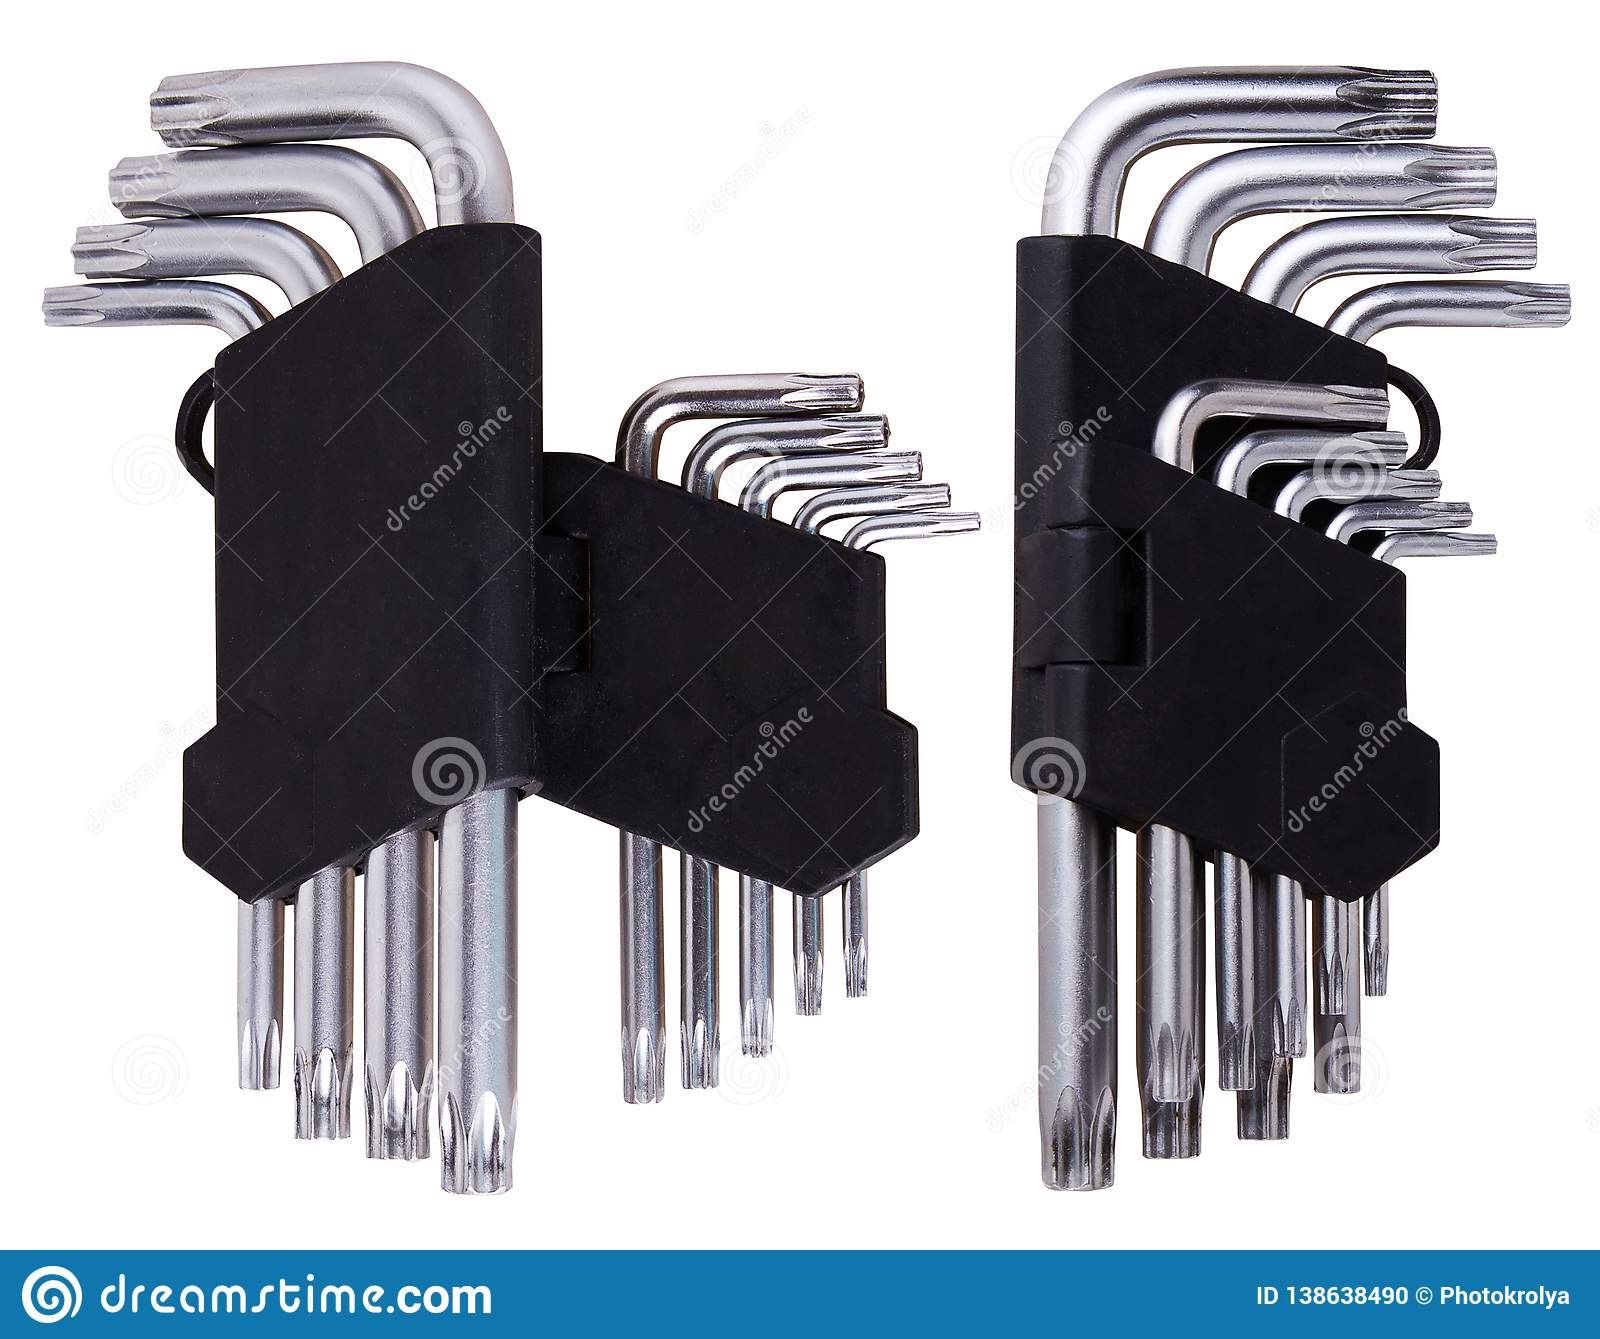 Set of Hex keys Allen wrenches in black plastic holder on a white background.